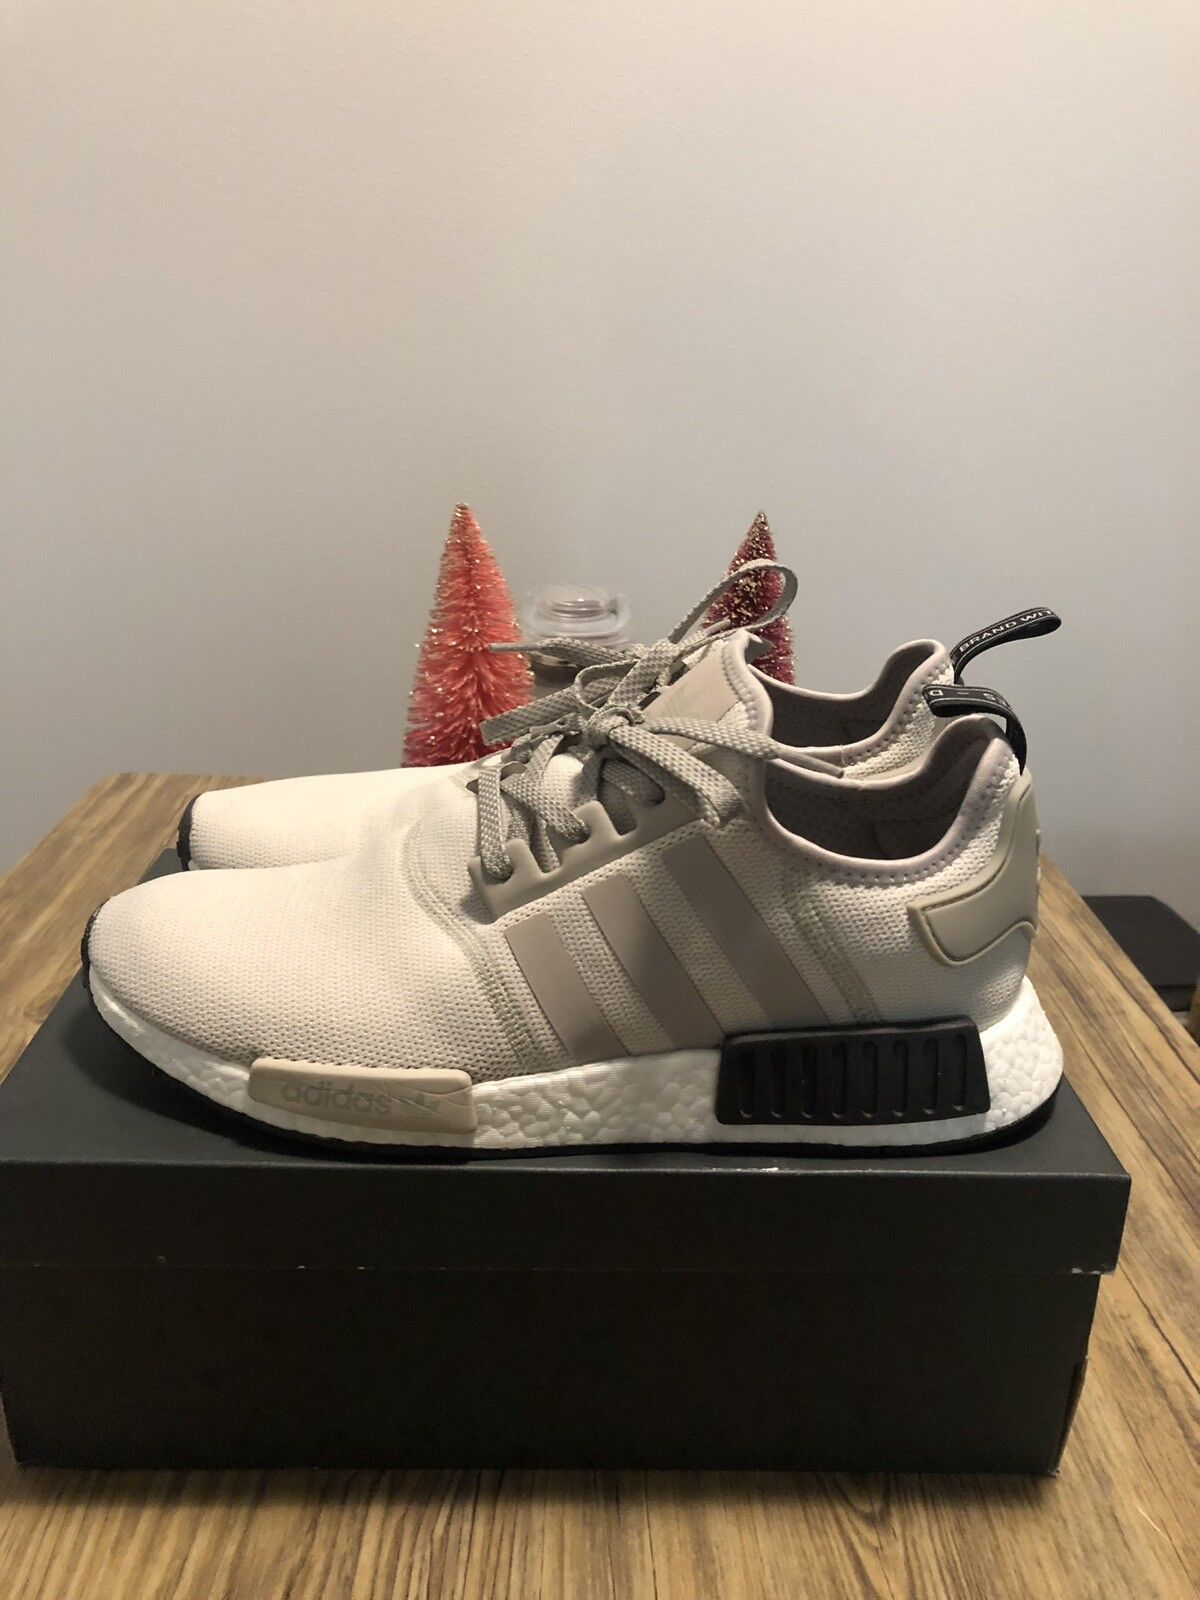 Adidas NMD R1 Tan Cream   Size Size Size 13 Excellent Condition Rare 1ded11